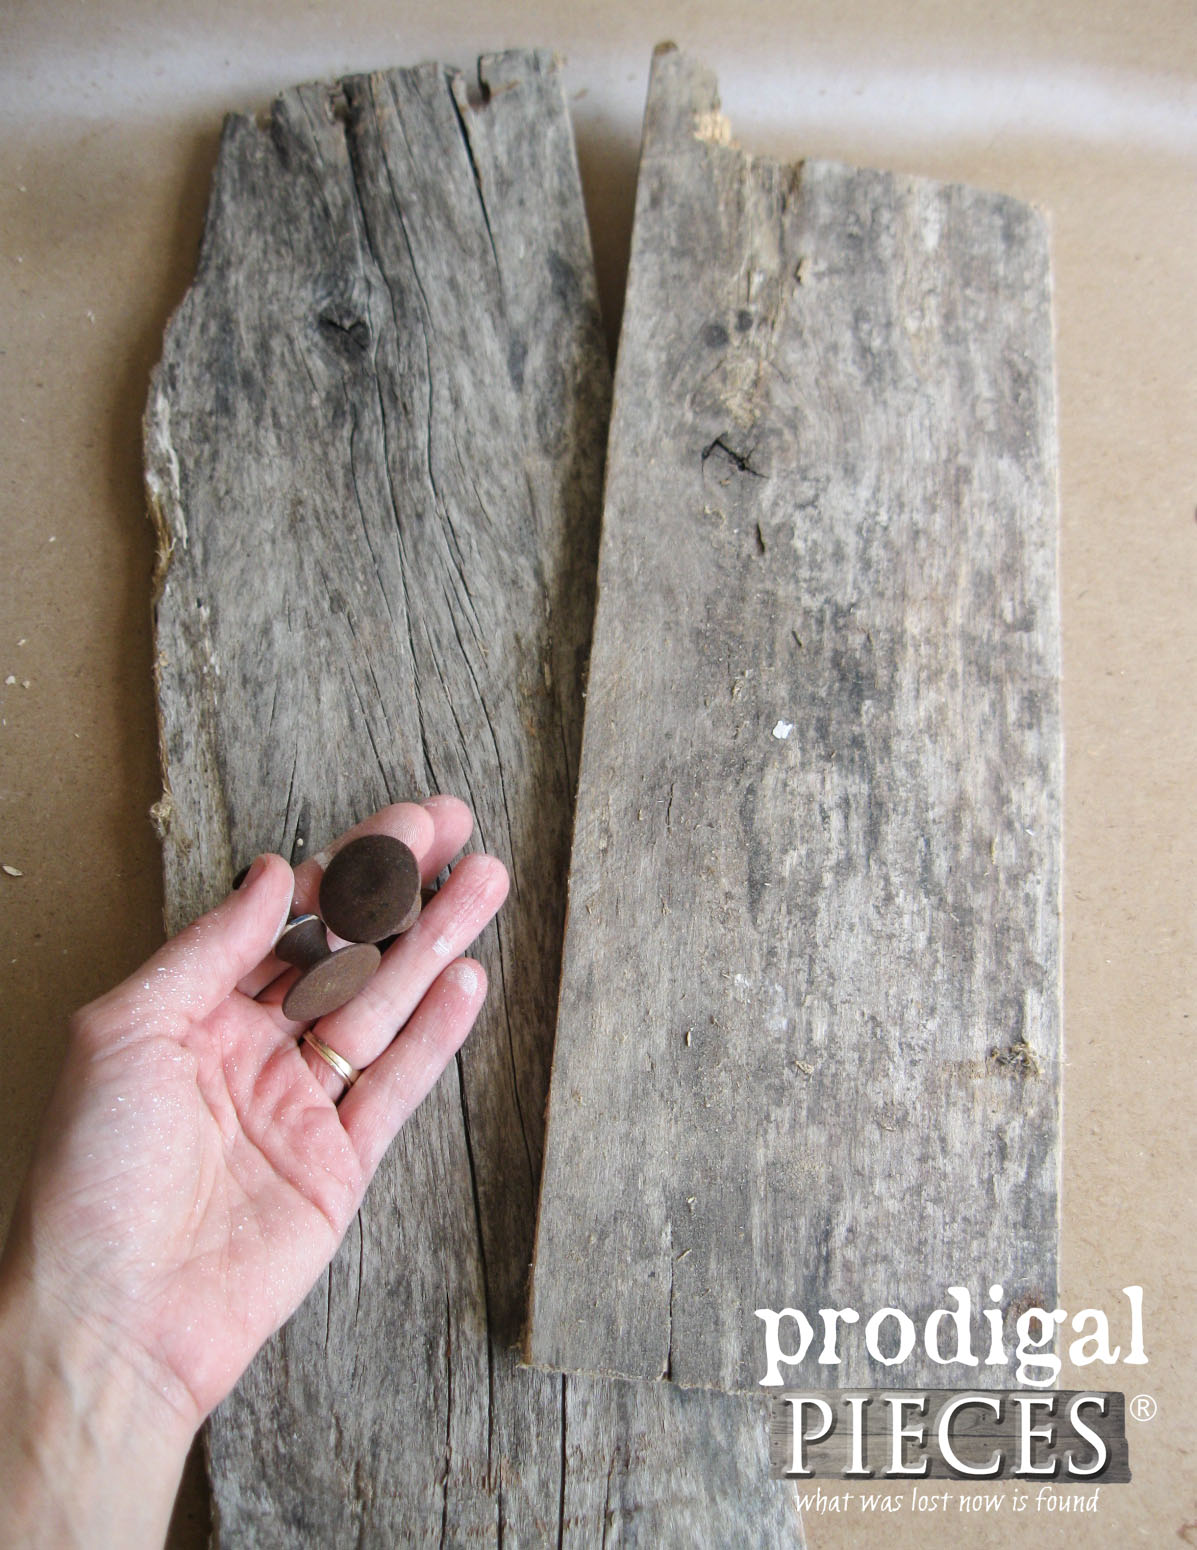 Reclaimed Wood and Rusty Metal Knobs Repurposed | Prodigal Pieces | www.prodigalpieces.com